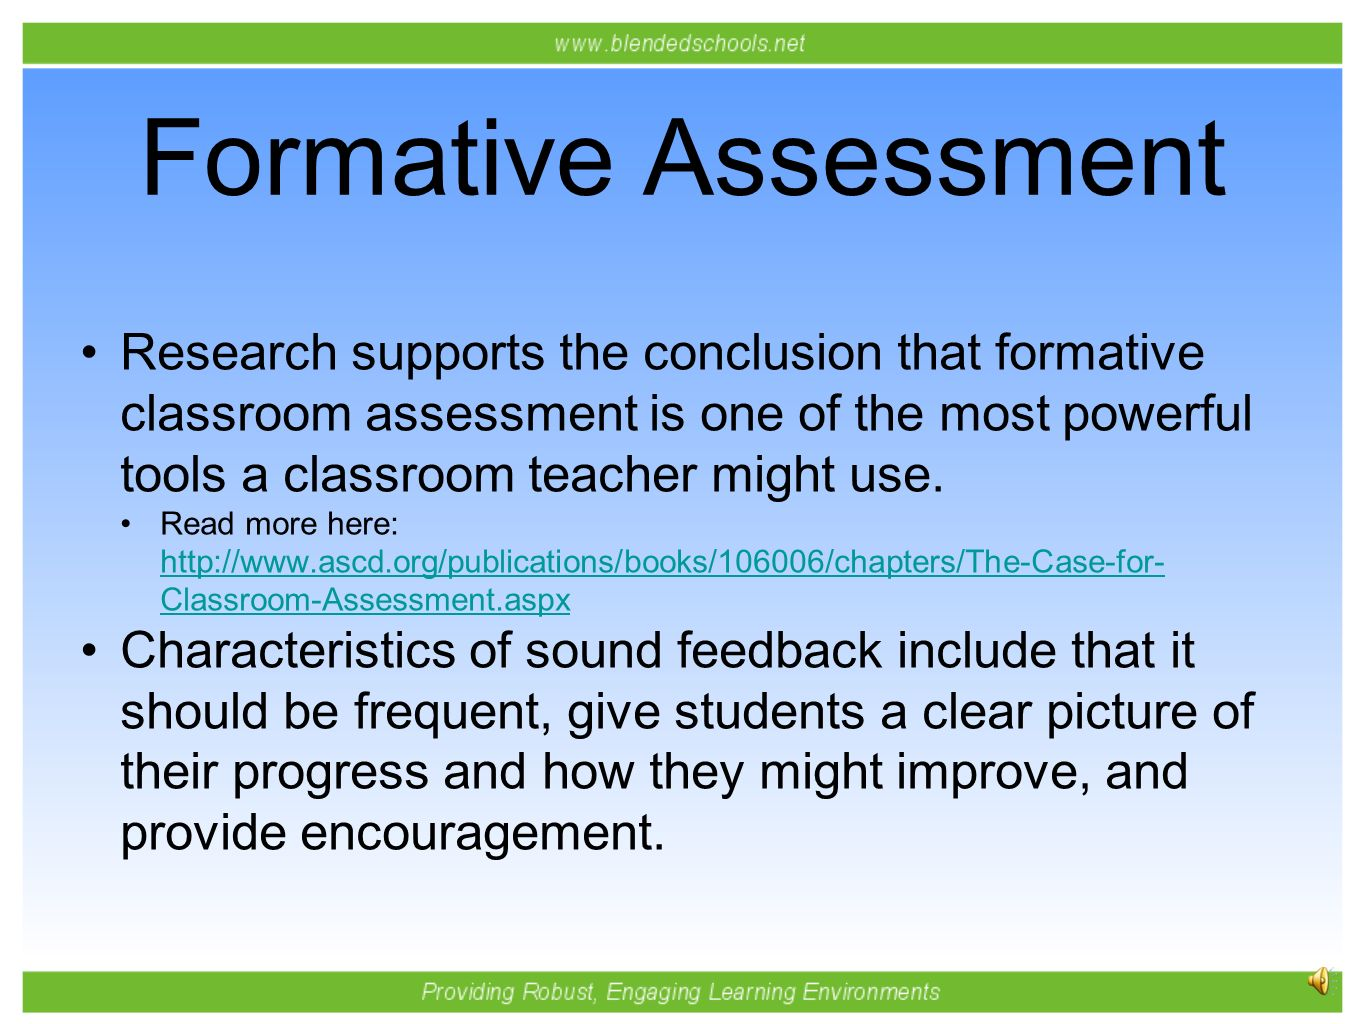 assessment choices in the classroom essay Formative assessment that truly informs instruction tomlinson outlines the progression of her thinking about classroom assessment in explaining each.